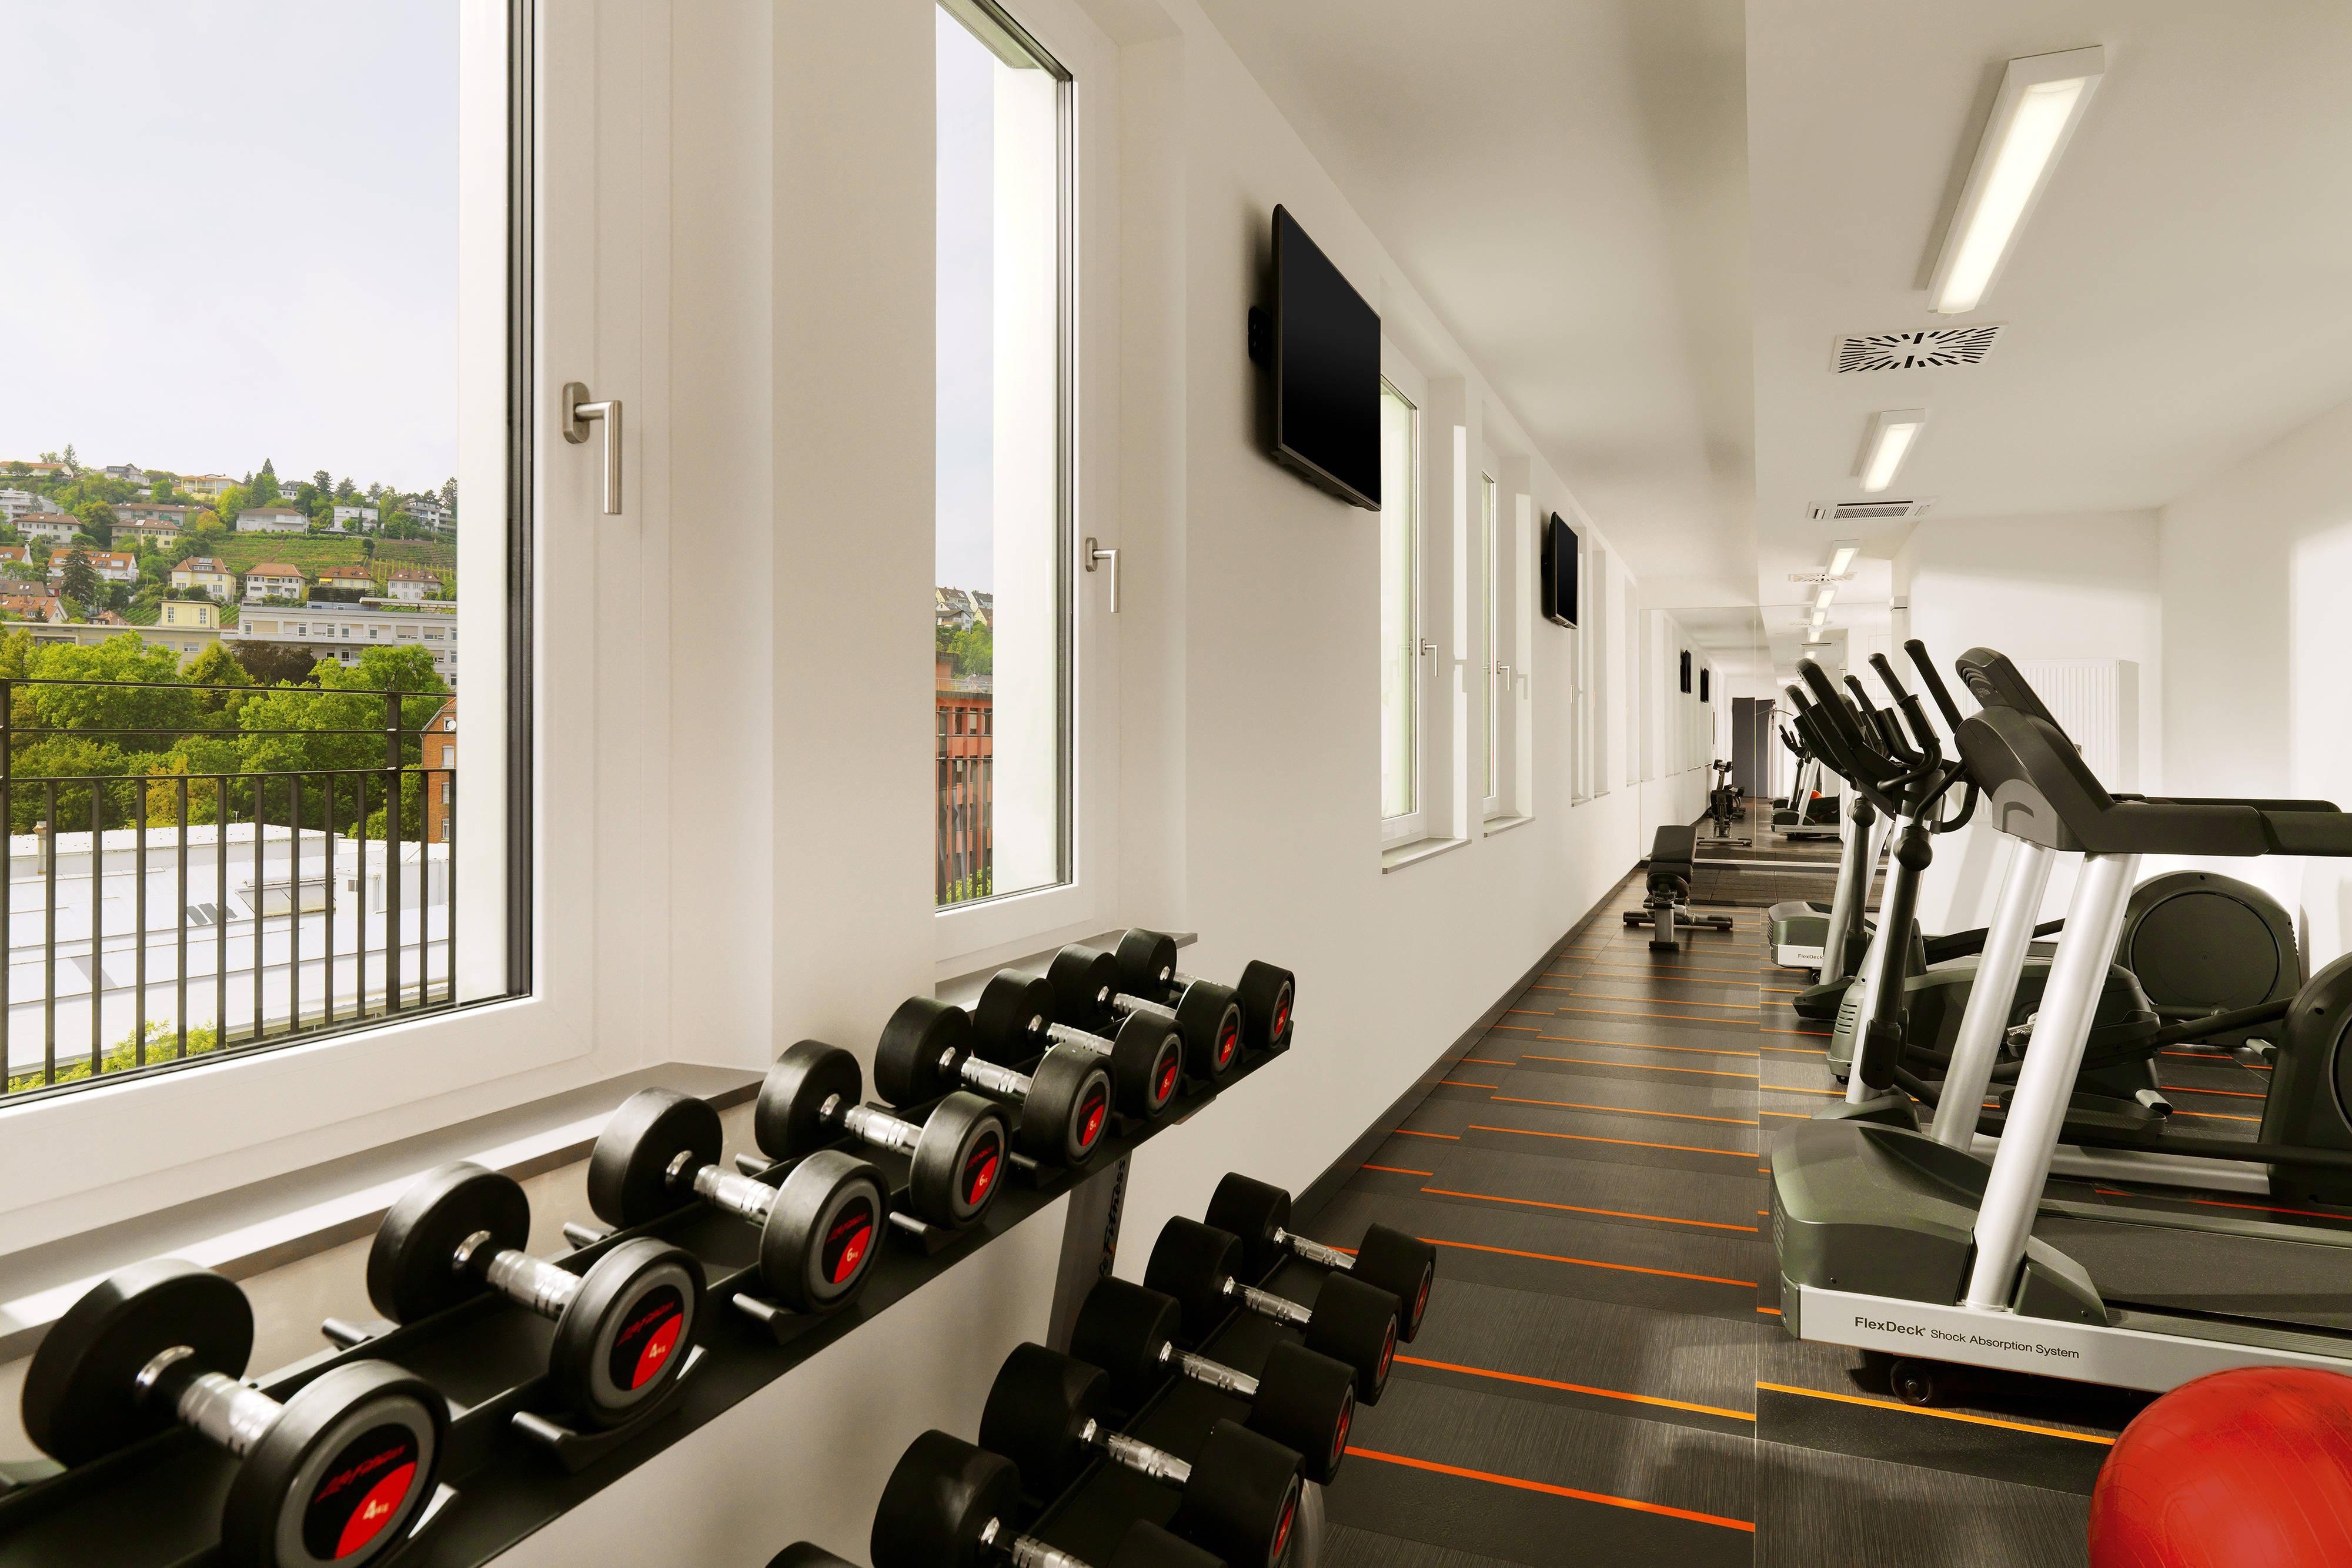 Recharge Gym